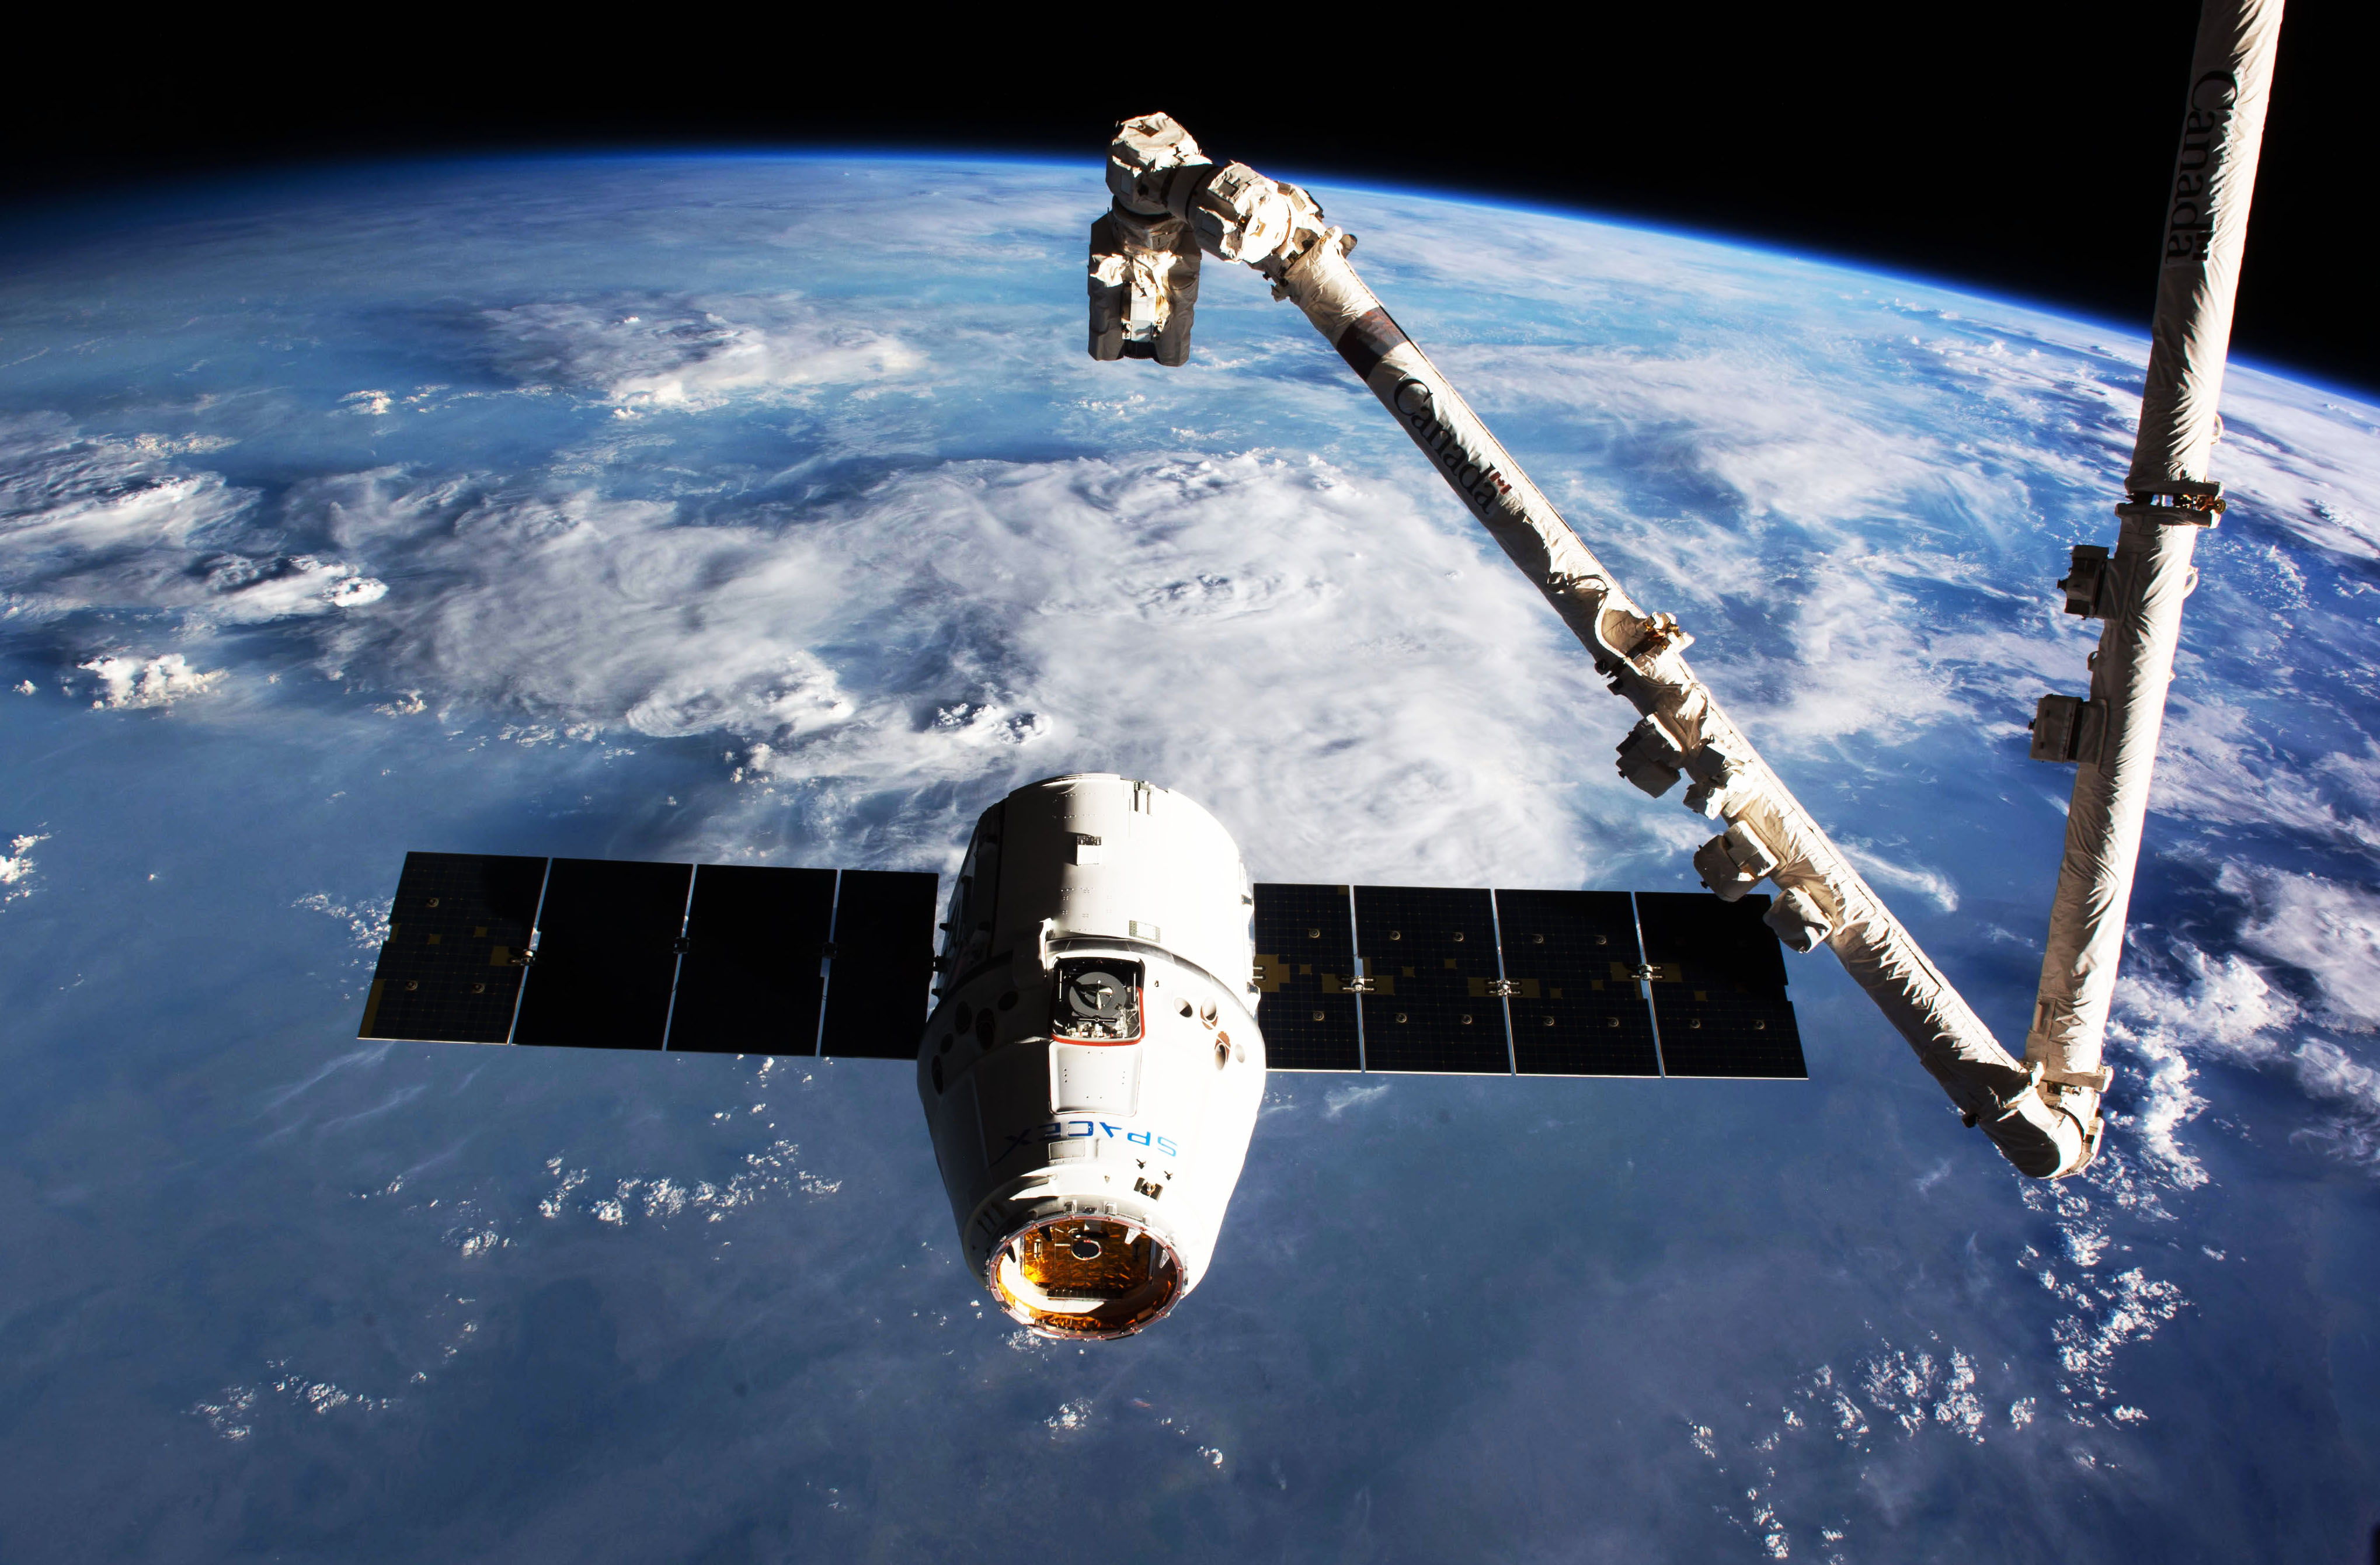 Dragon Set to Deliver Supplies to International Space ...